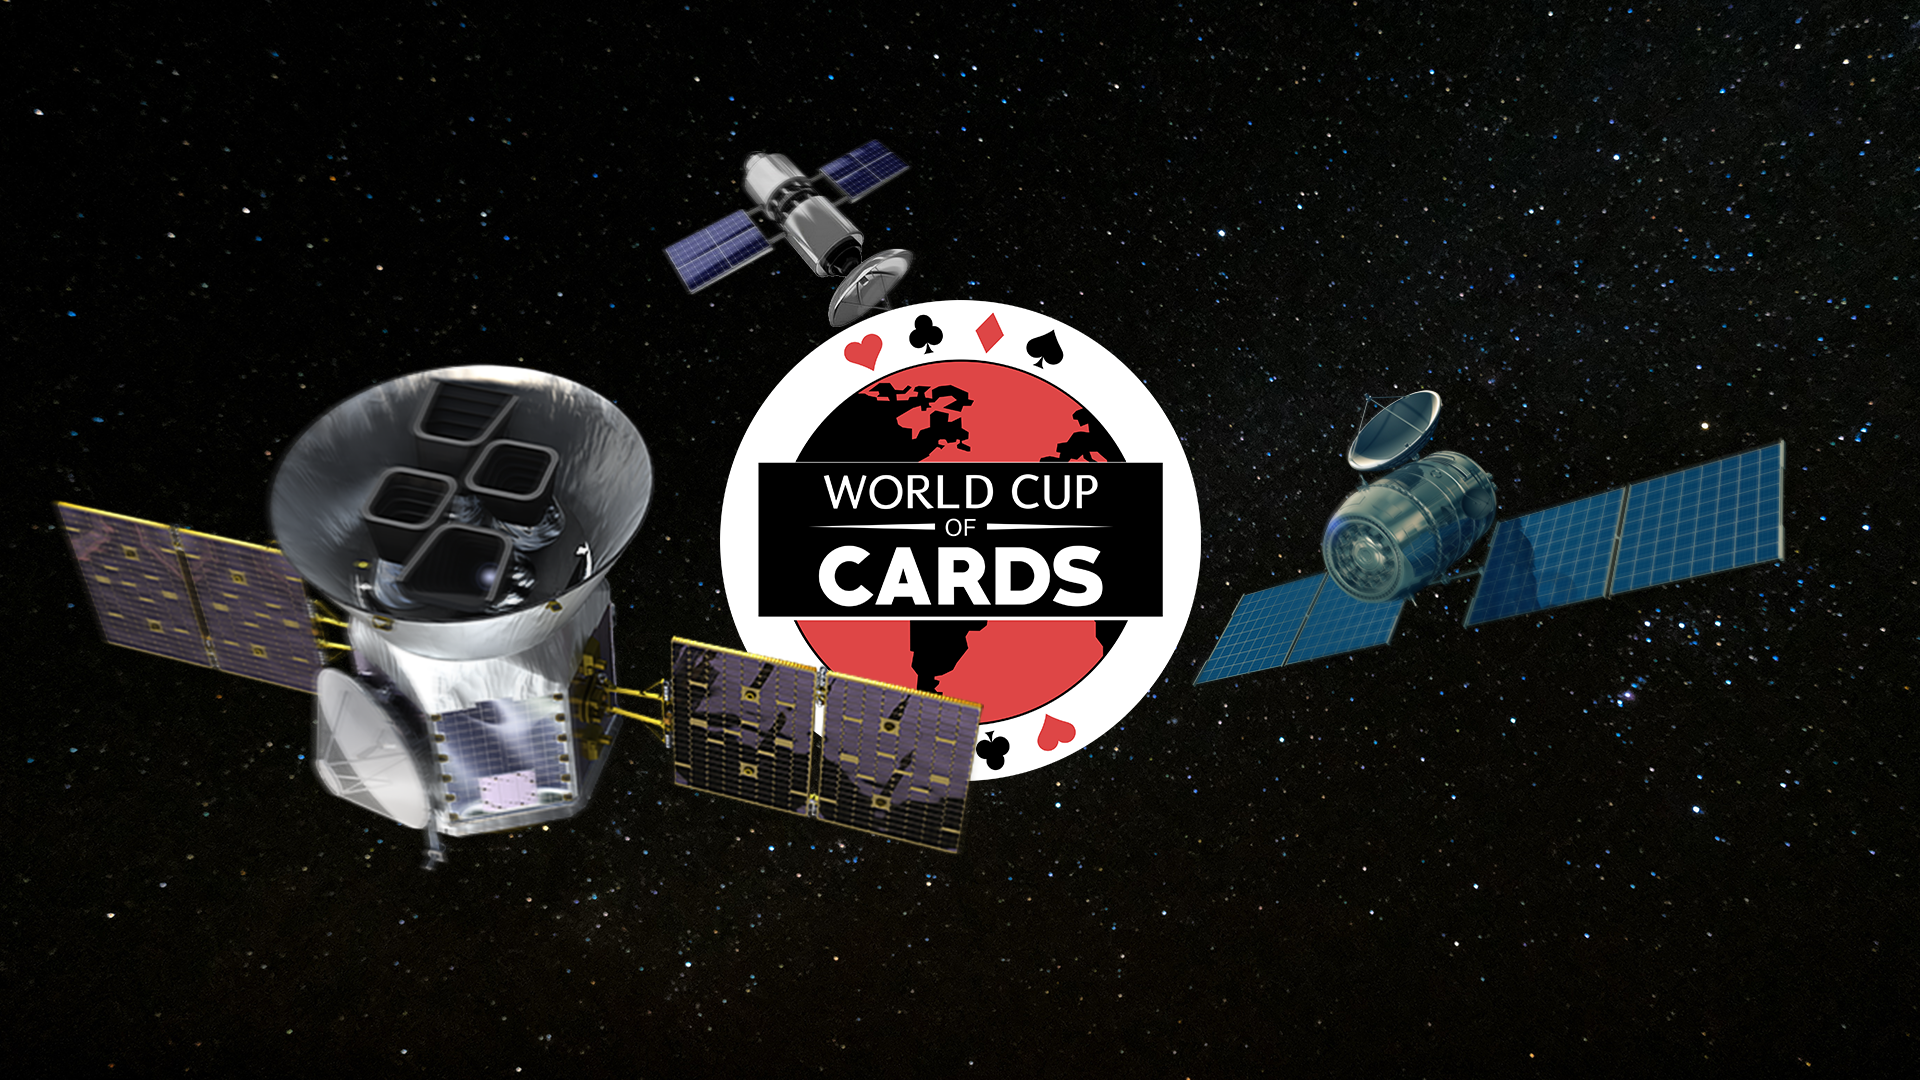 The Satellites of the WCC